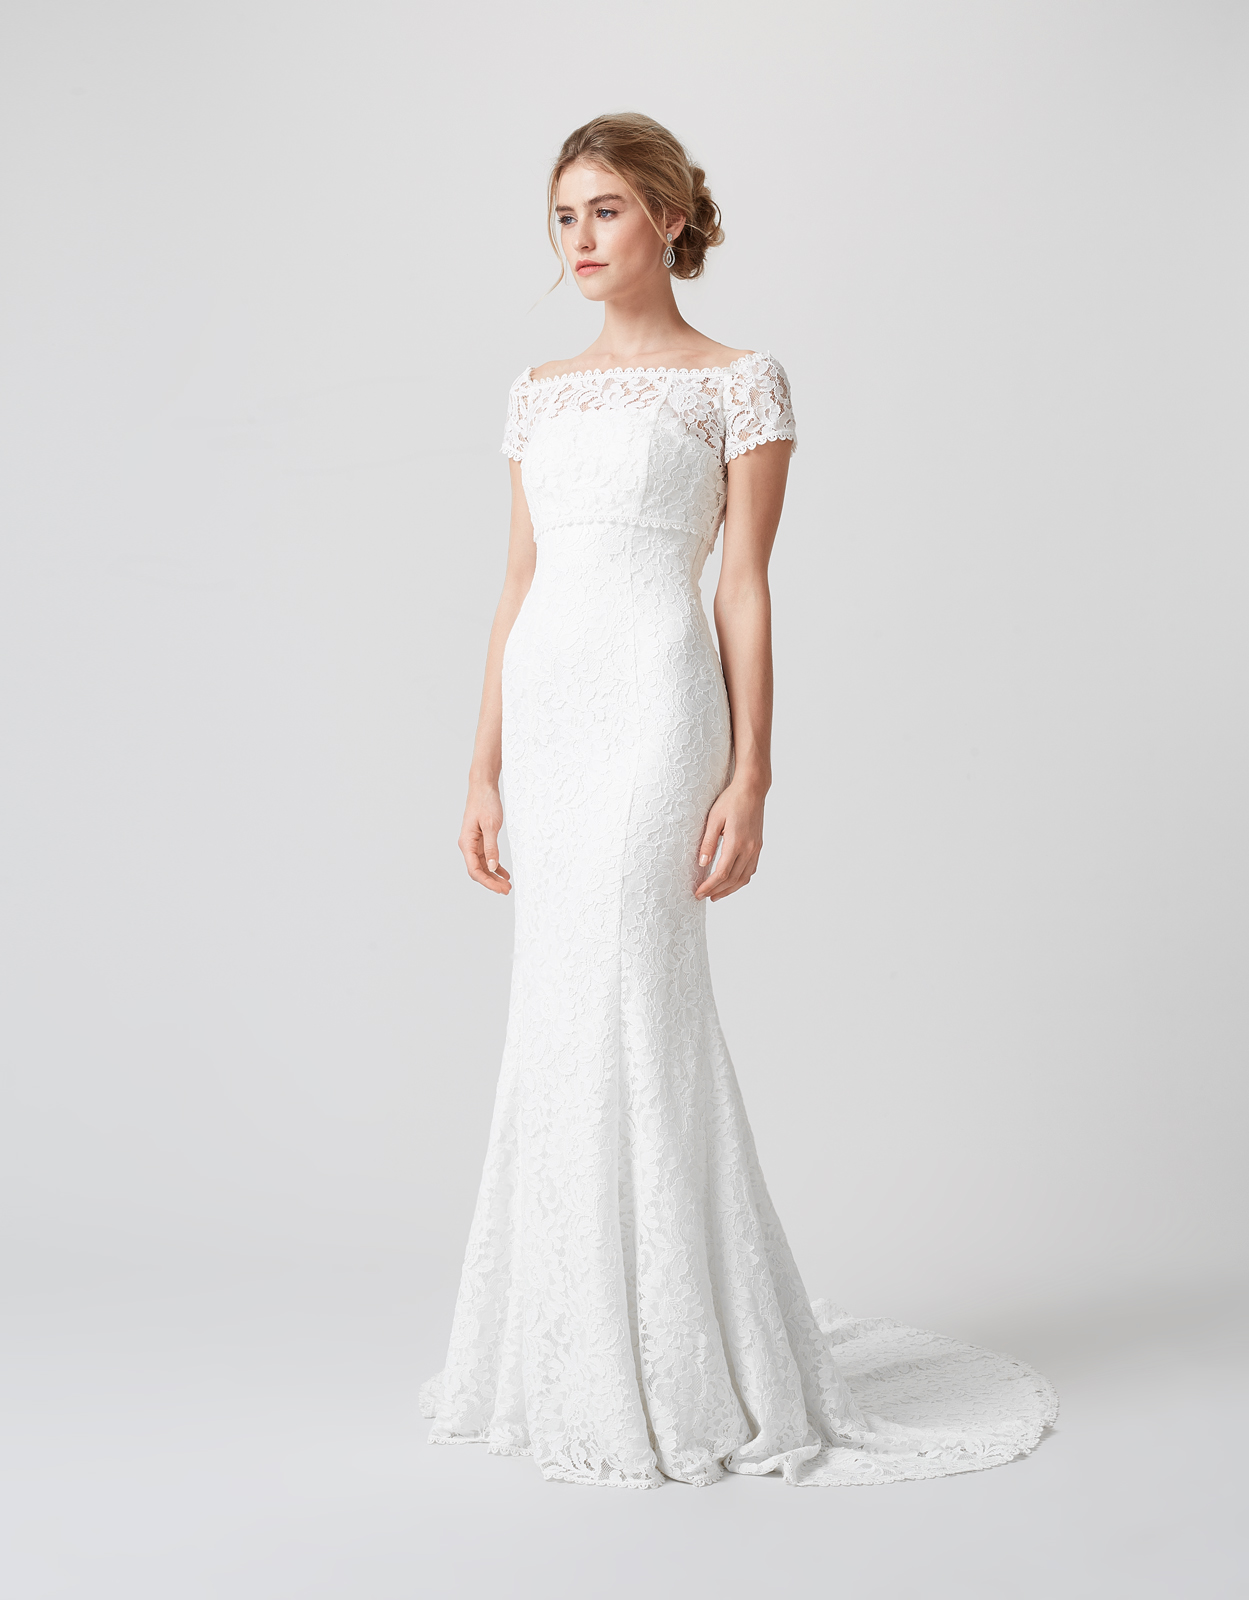 Lace Wedding Dresses Under 400 : Wedding dresses under ? glamorous